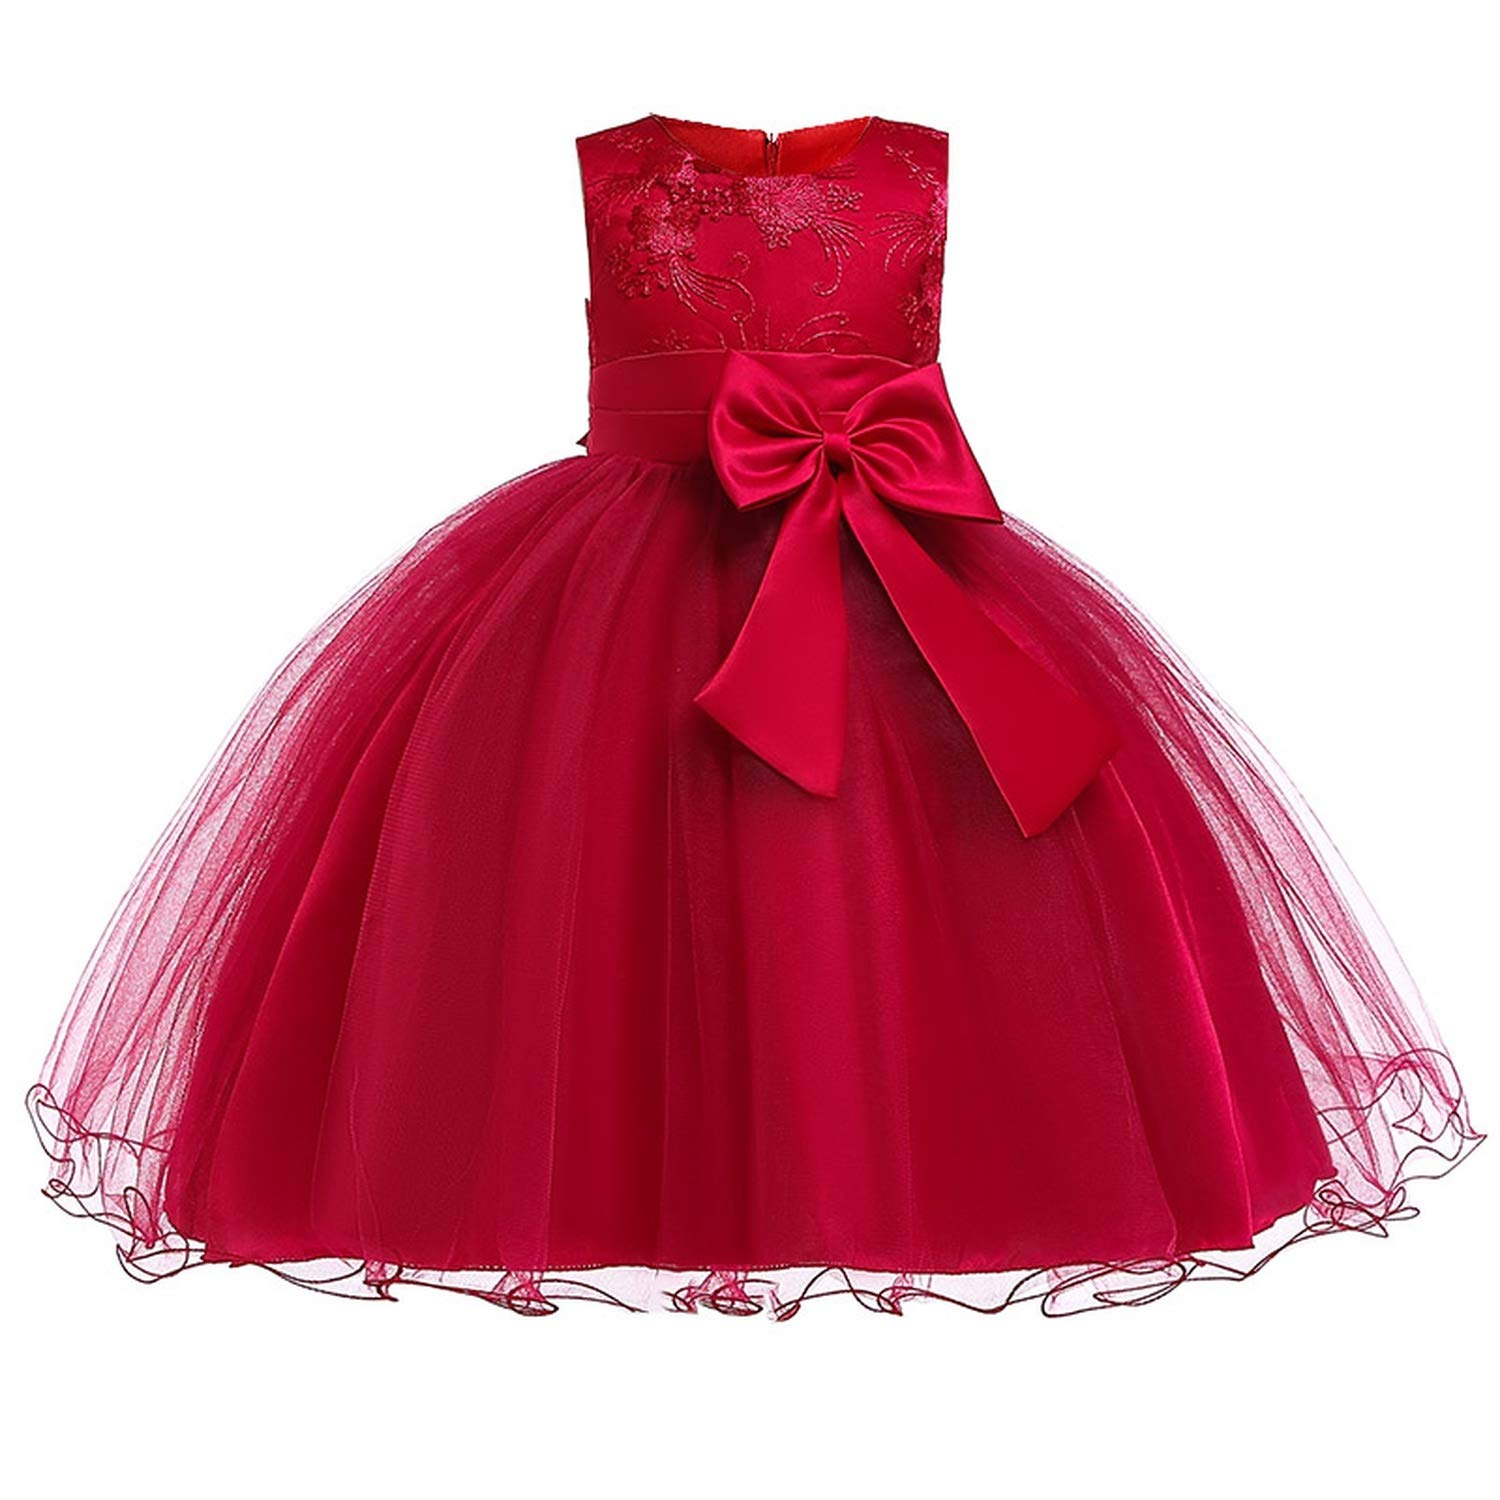 Girls Dress Summer Kids Dresses for Girl Princess Children Baby Tutu 2 3 4 5 6 7 8 9 10 Years,As Picture10,9 by Gooding Day (Image #2)